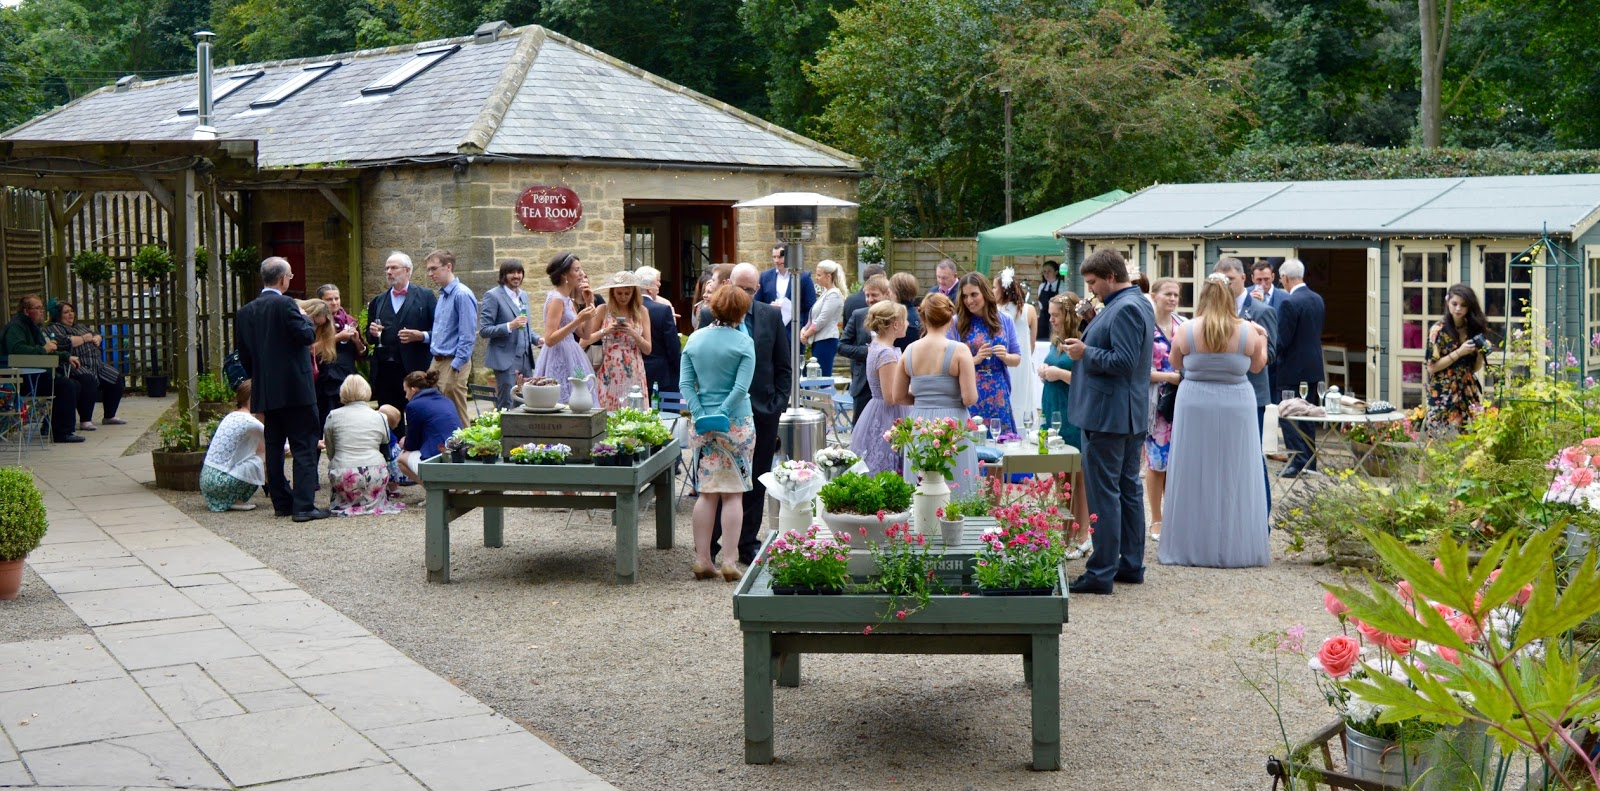 Weddings at The Parlour at Blagdon in Northumberland - drinks reception in the garden